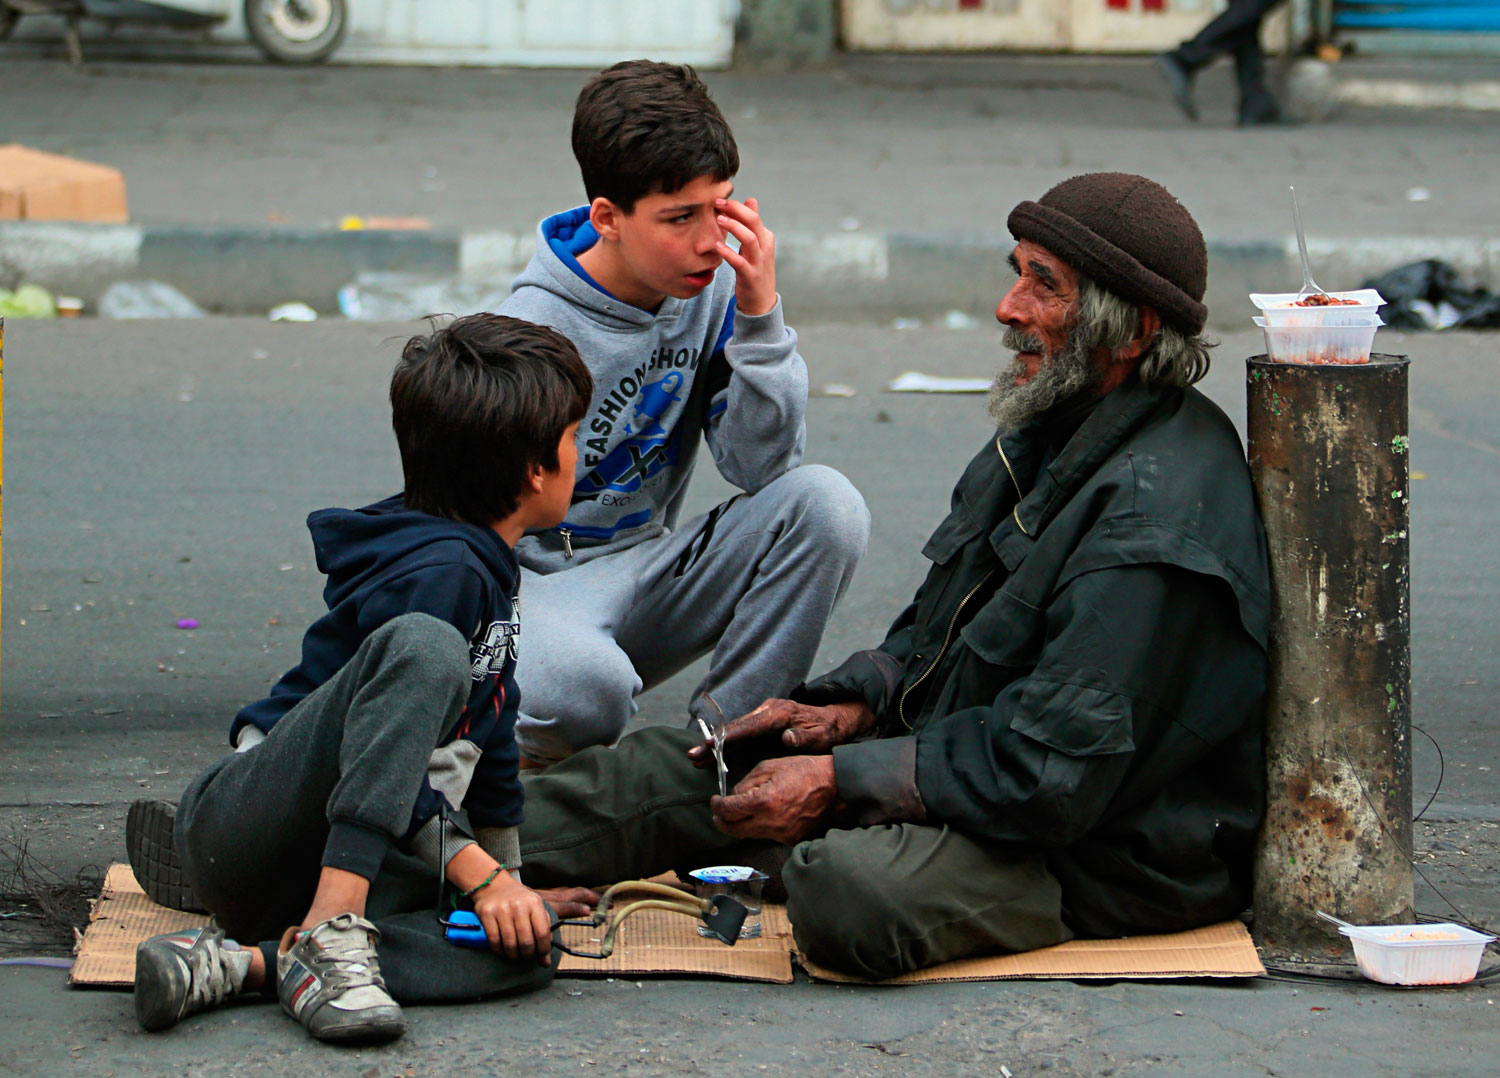 Two younger protesters talk with an older man during ongoing anti-government protests in Baghdad, Iraq